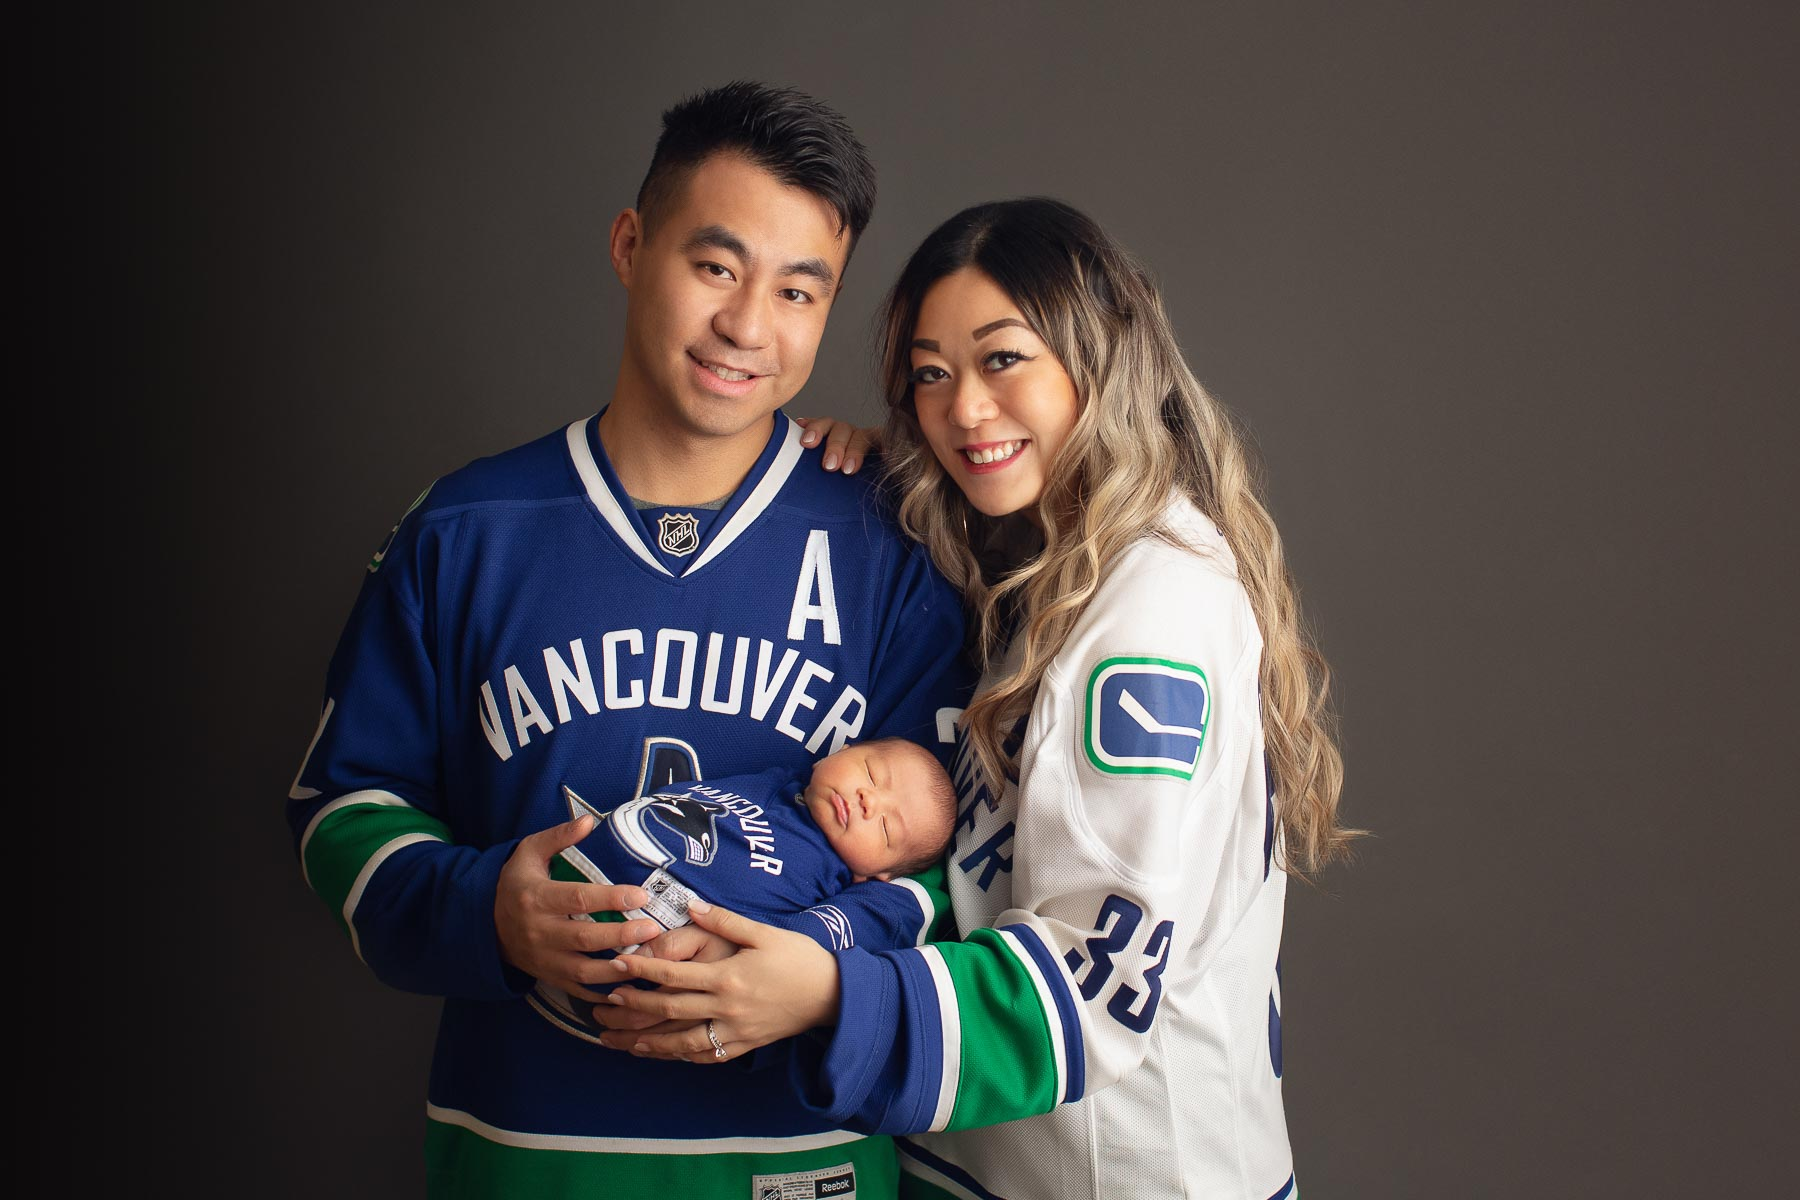 Canucks newest fan| newborn photography, Canucks newest fan | newborn photography